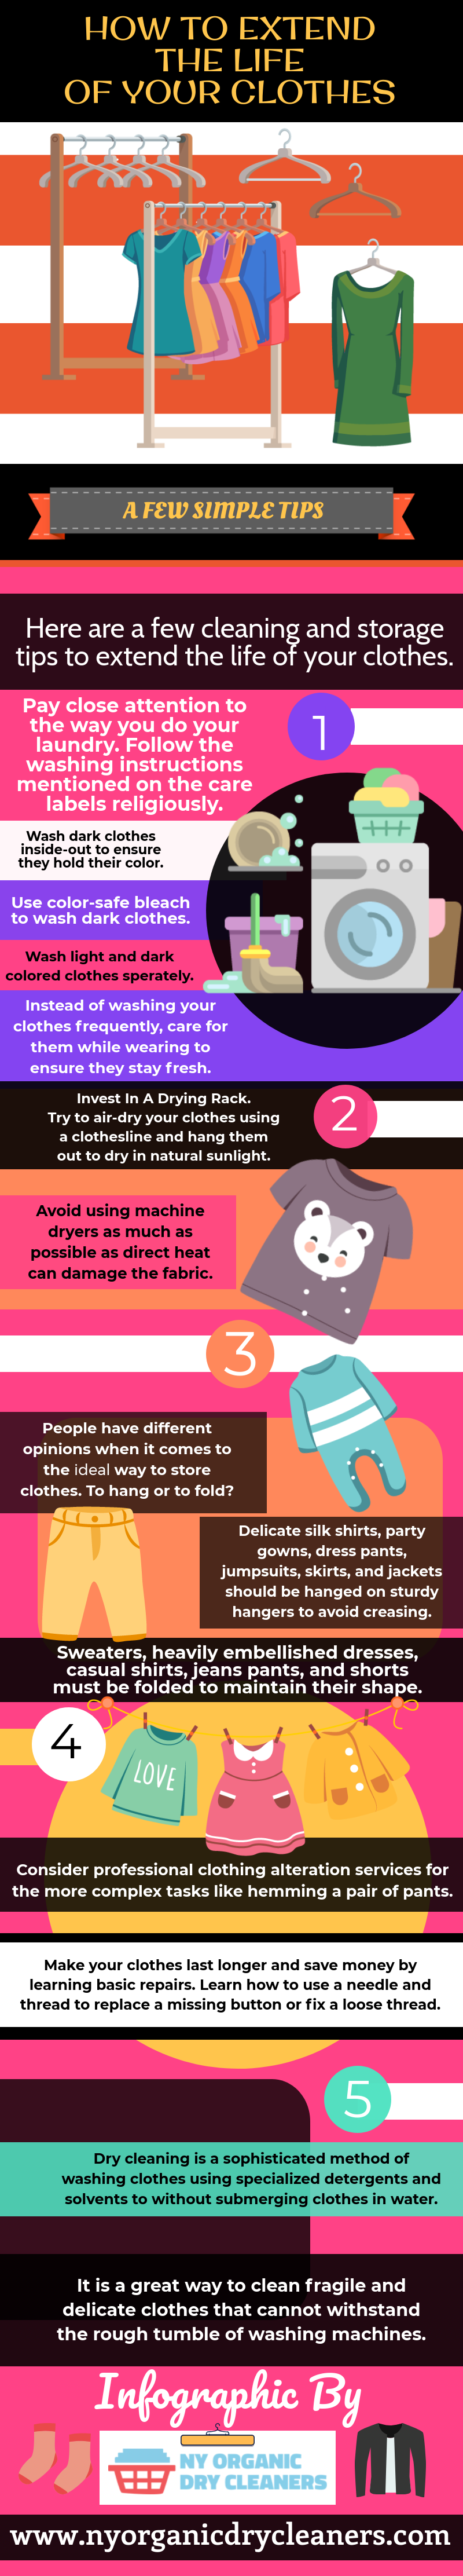 dry cleaning infographic